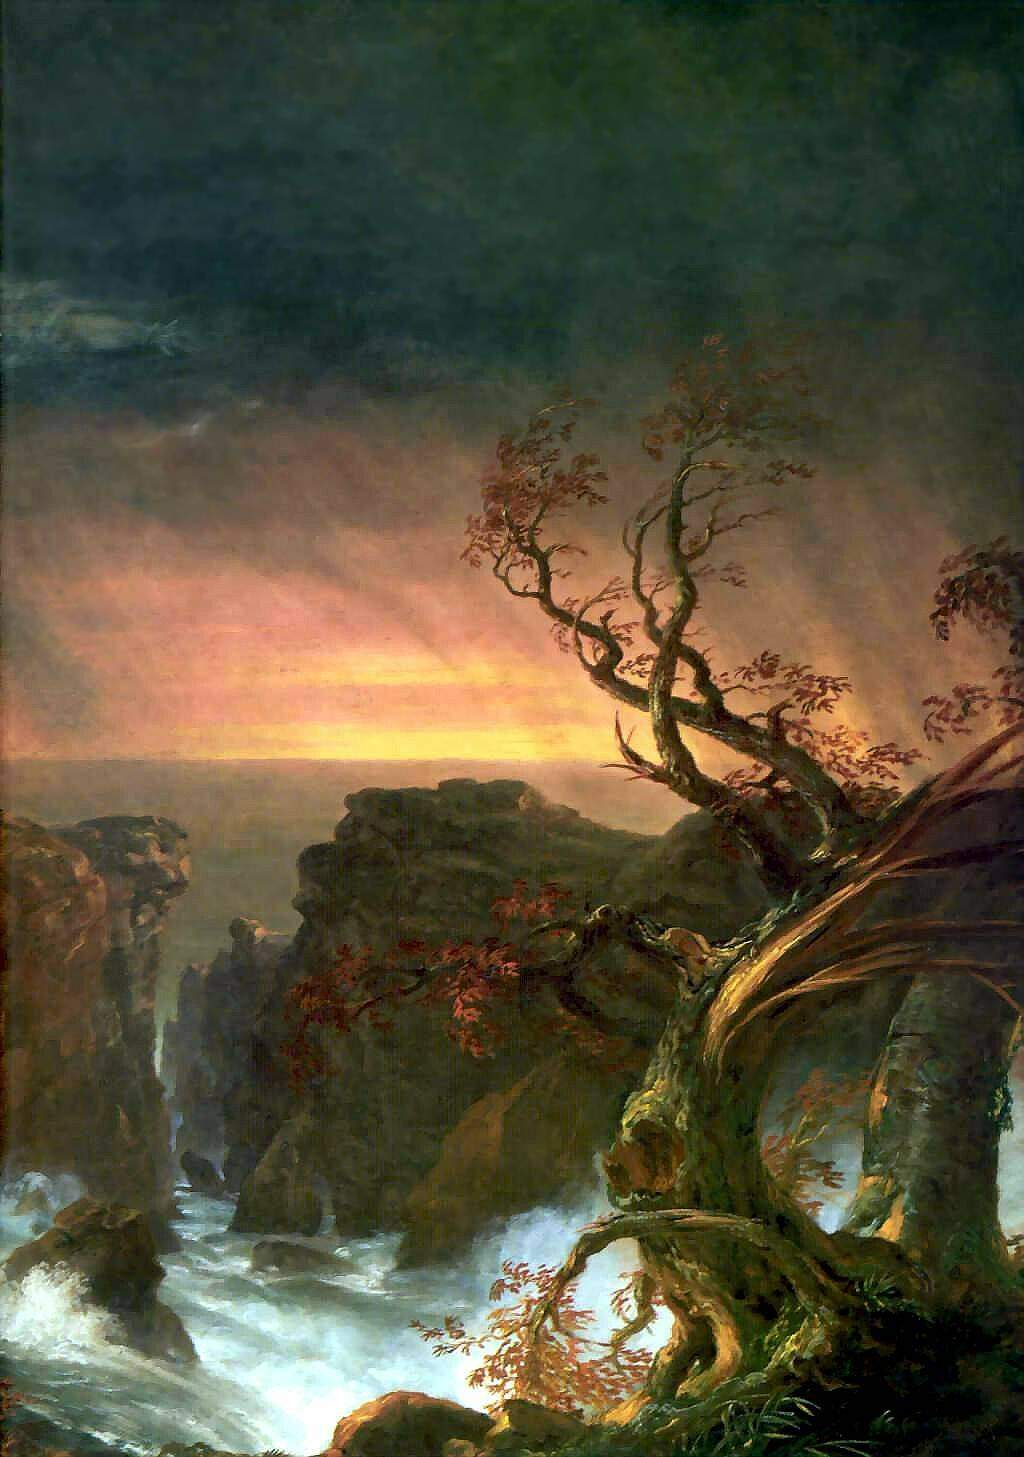 the life and painting works of american landscape painter thomas cole The english-born american painter thomas cole (1801-1848) is famous for establishing the hudson river school, an art movement dedicated to romantic landscape painting, that flourished in the middle of the 19th century.